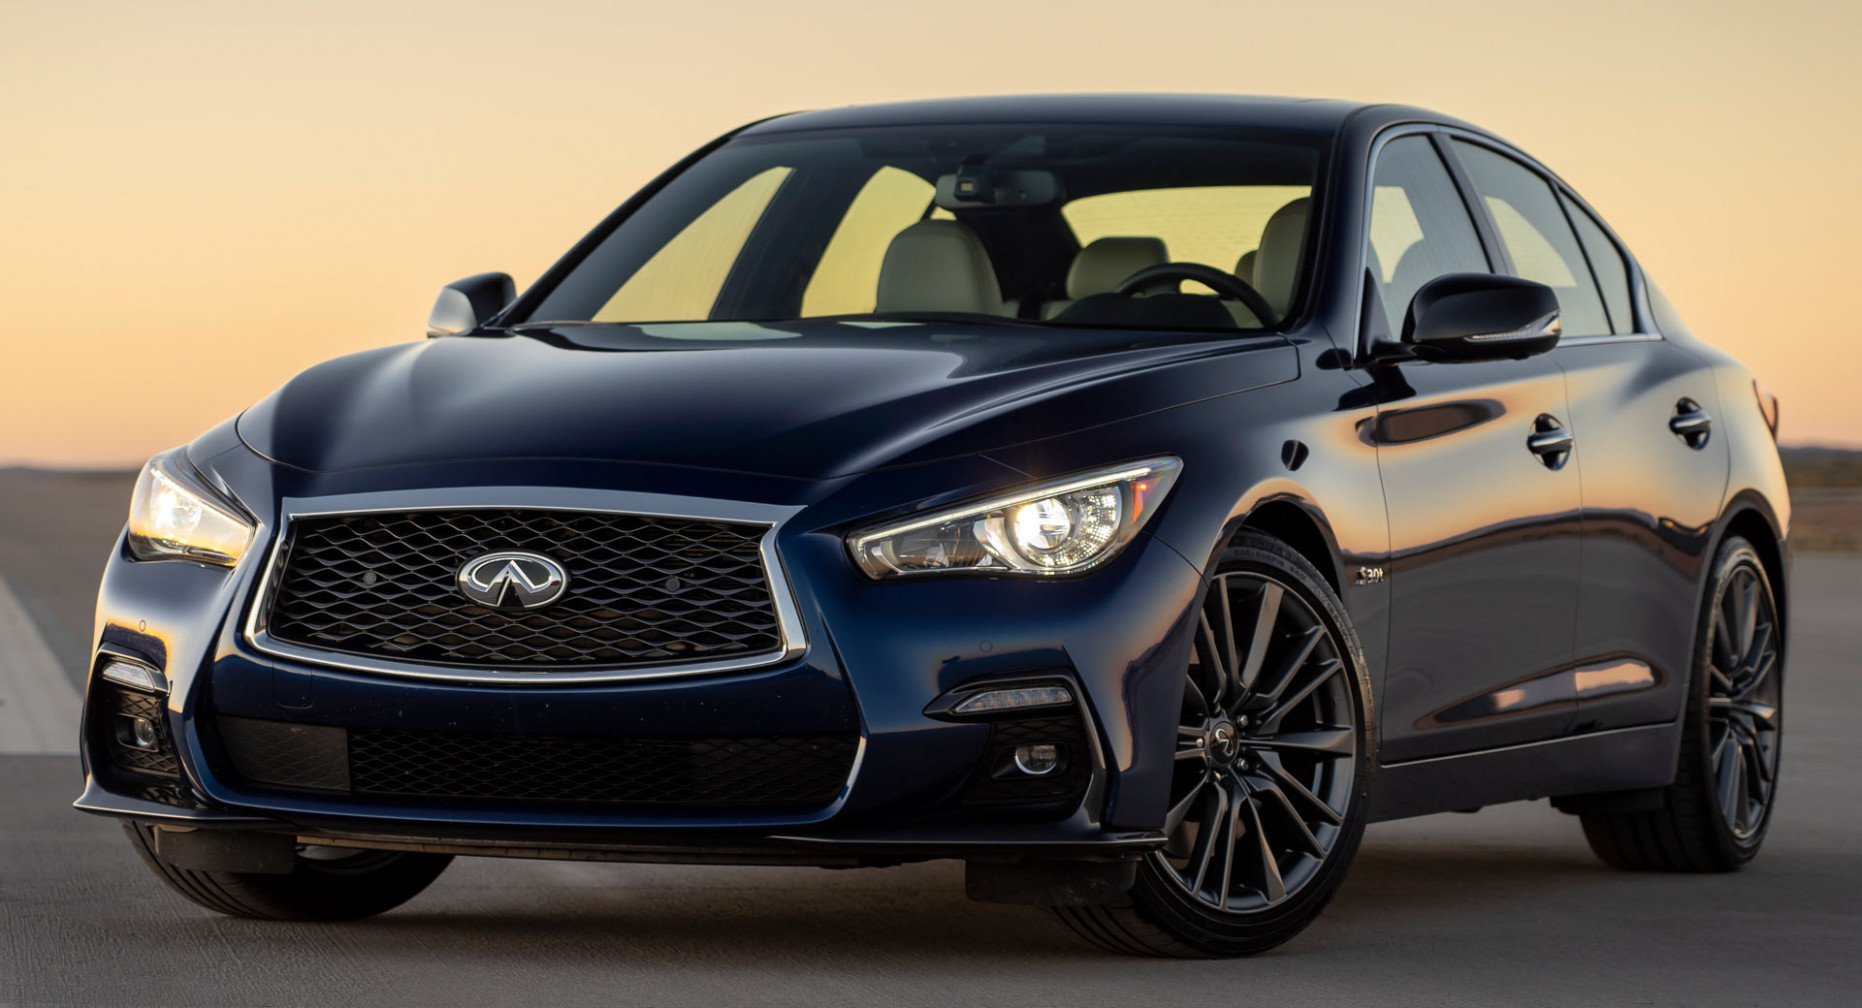 Price and Release date 2022 Infiniti Q70 Spy Photos